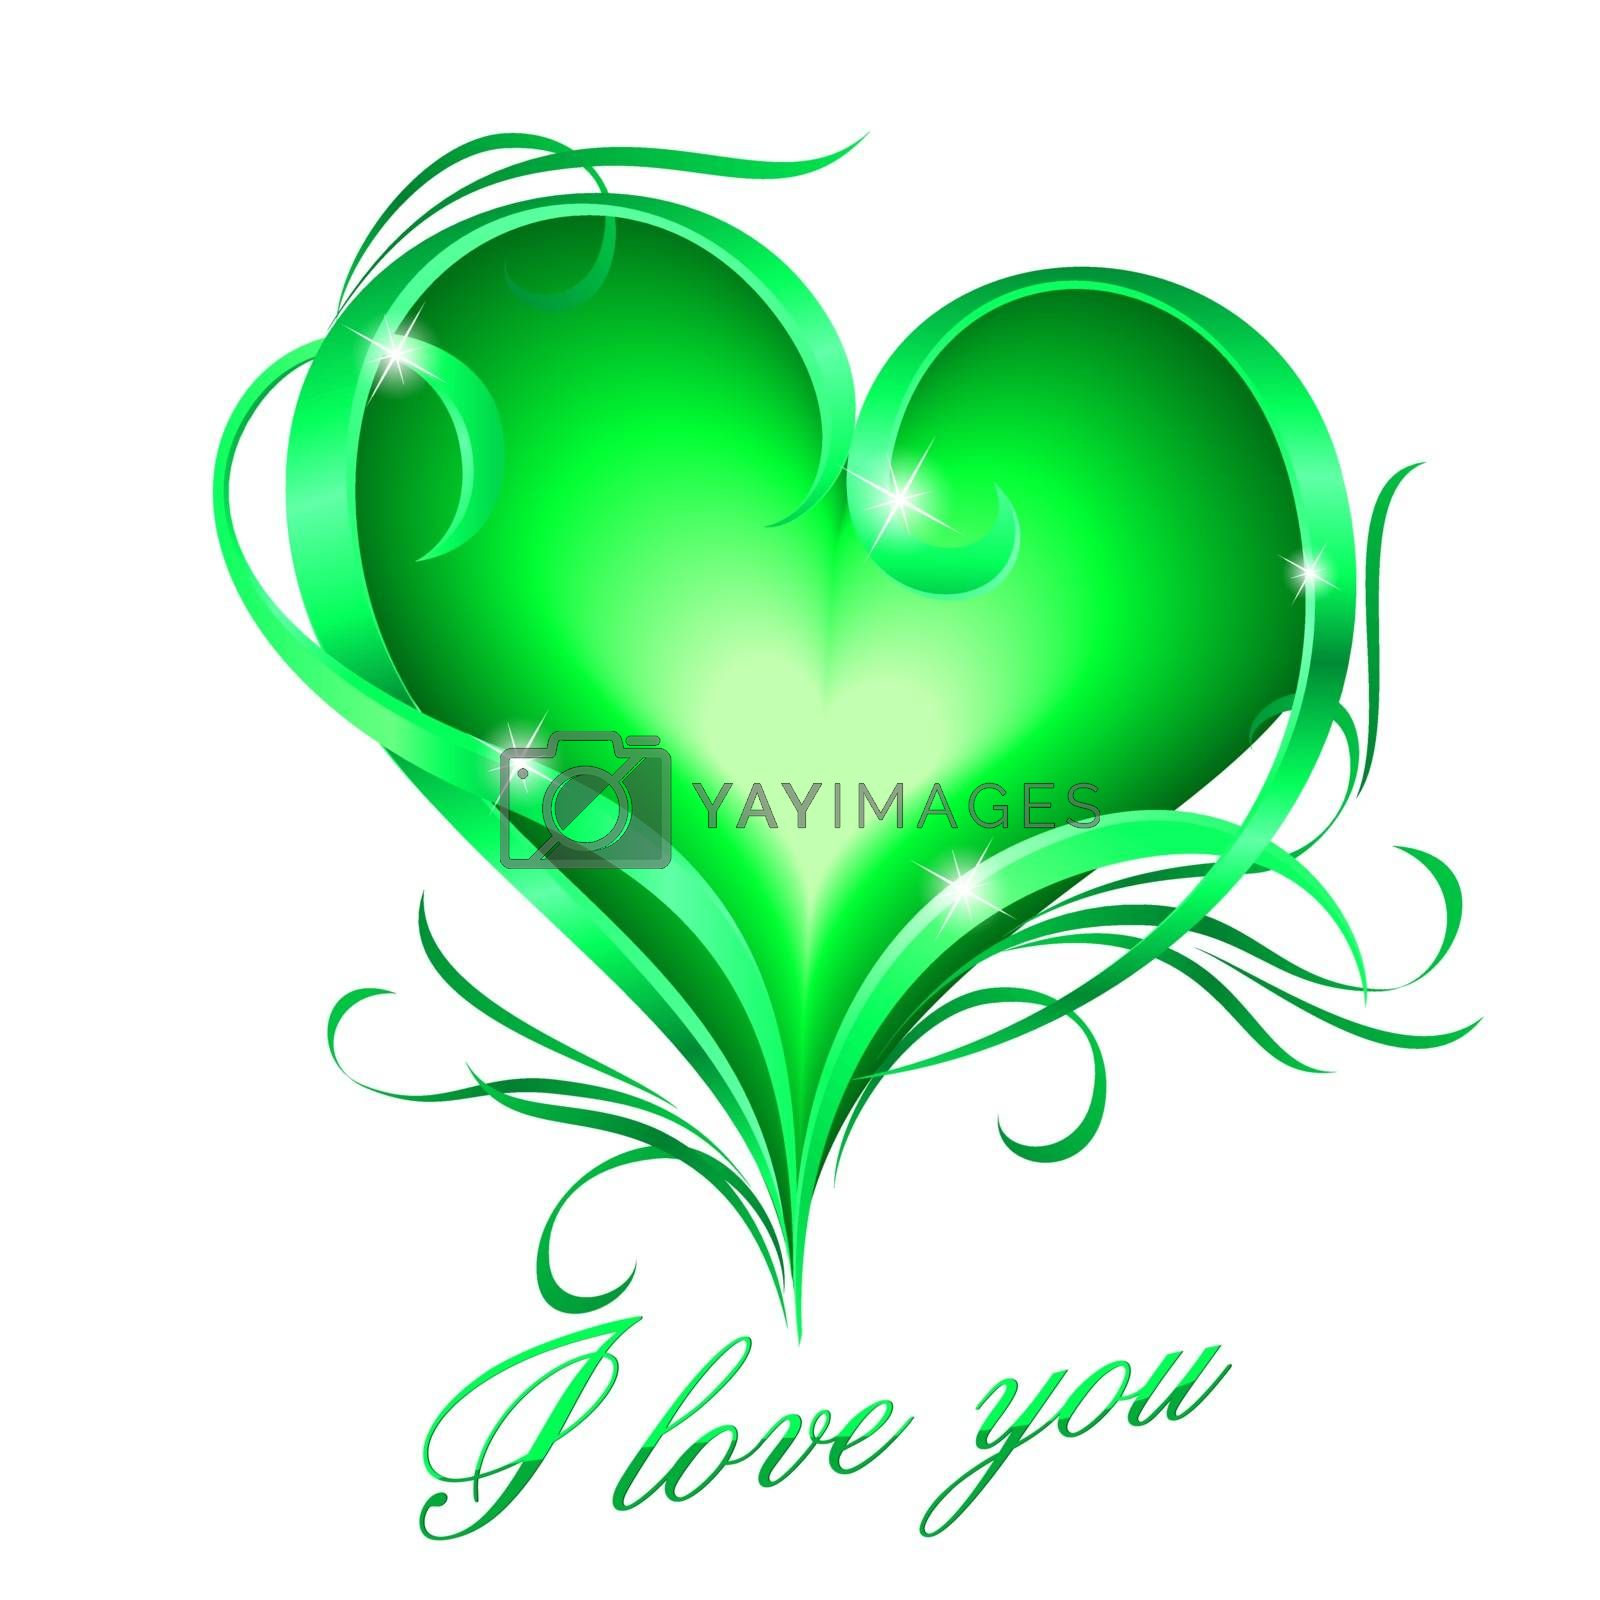 Green heart with I love you text by dvarg